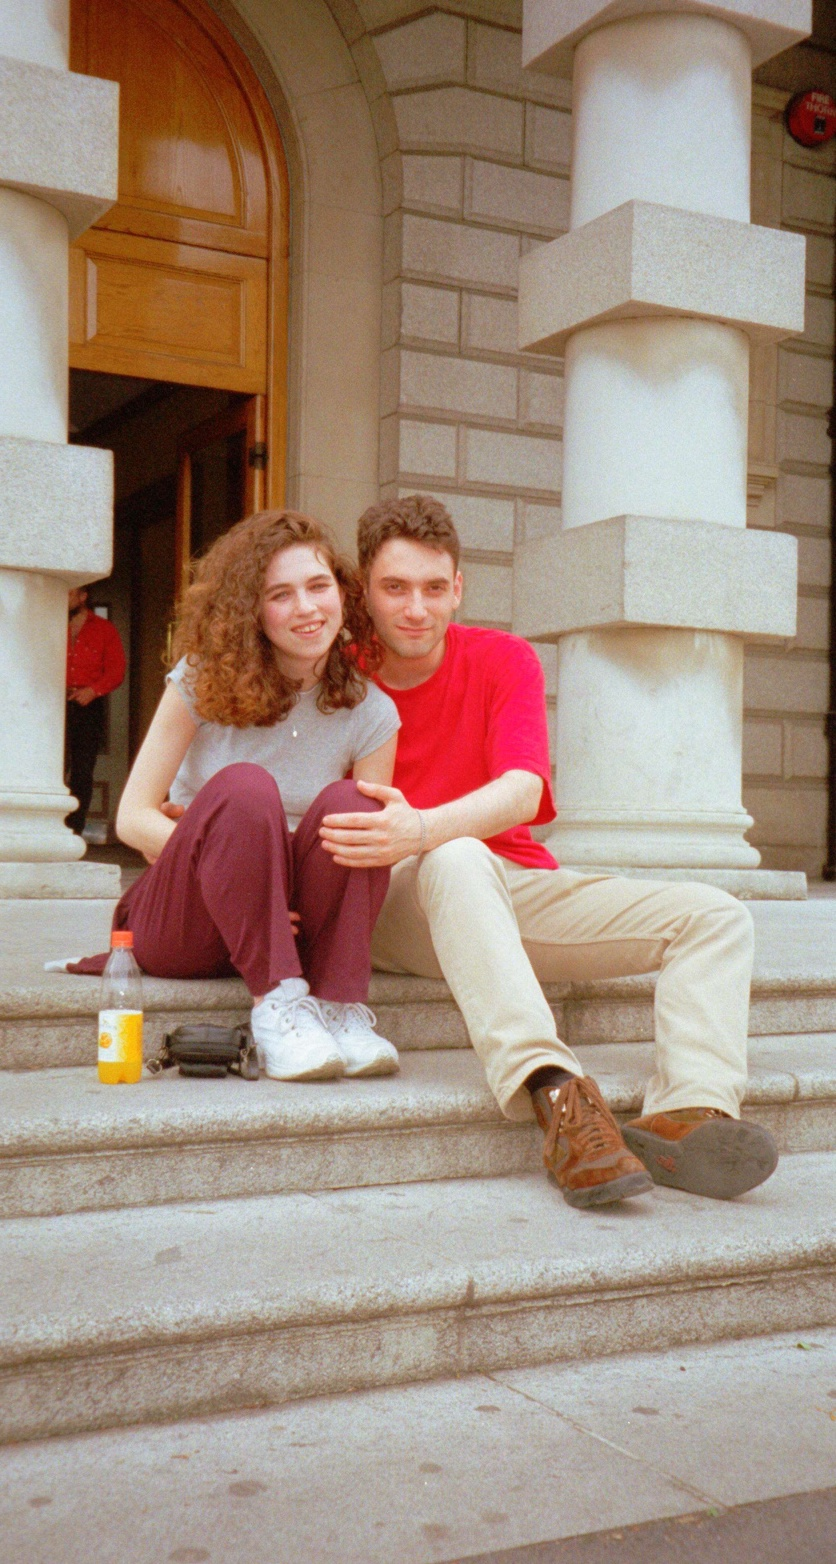 Emma and Daniel on the youth hostel steps